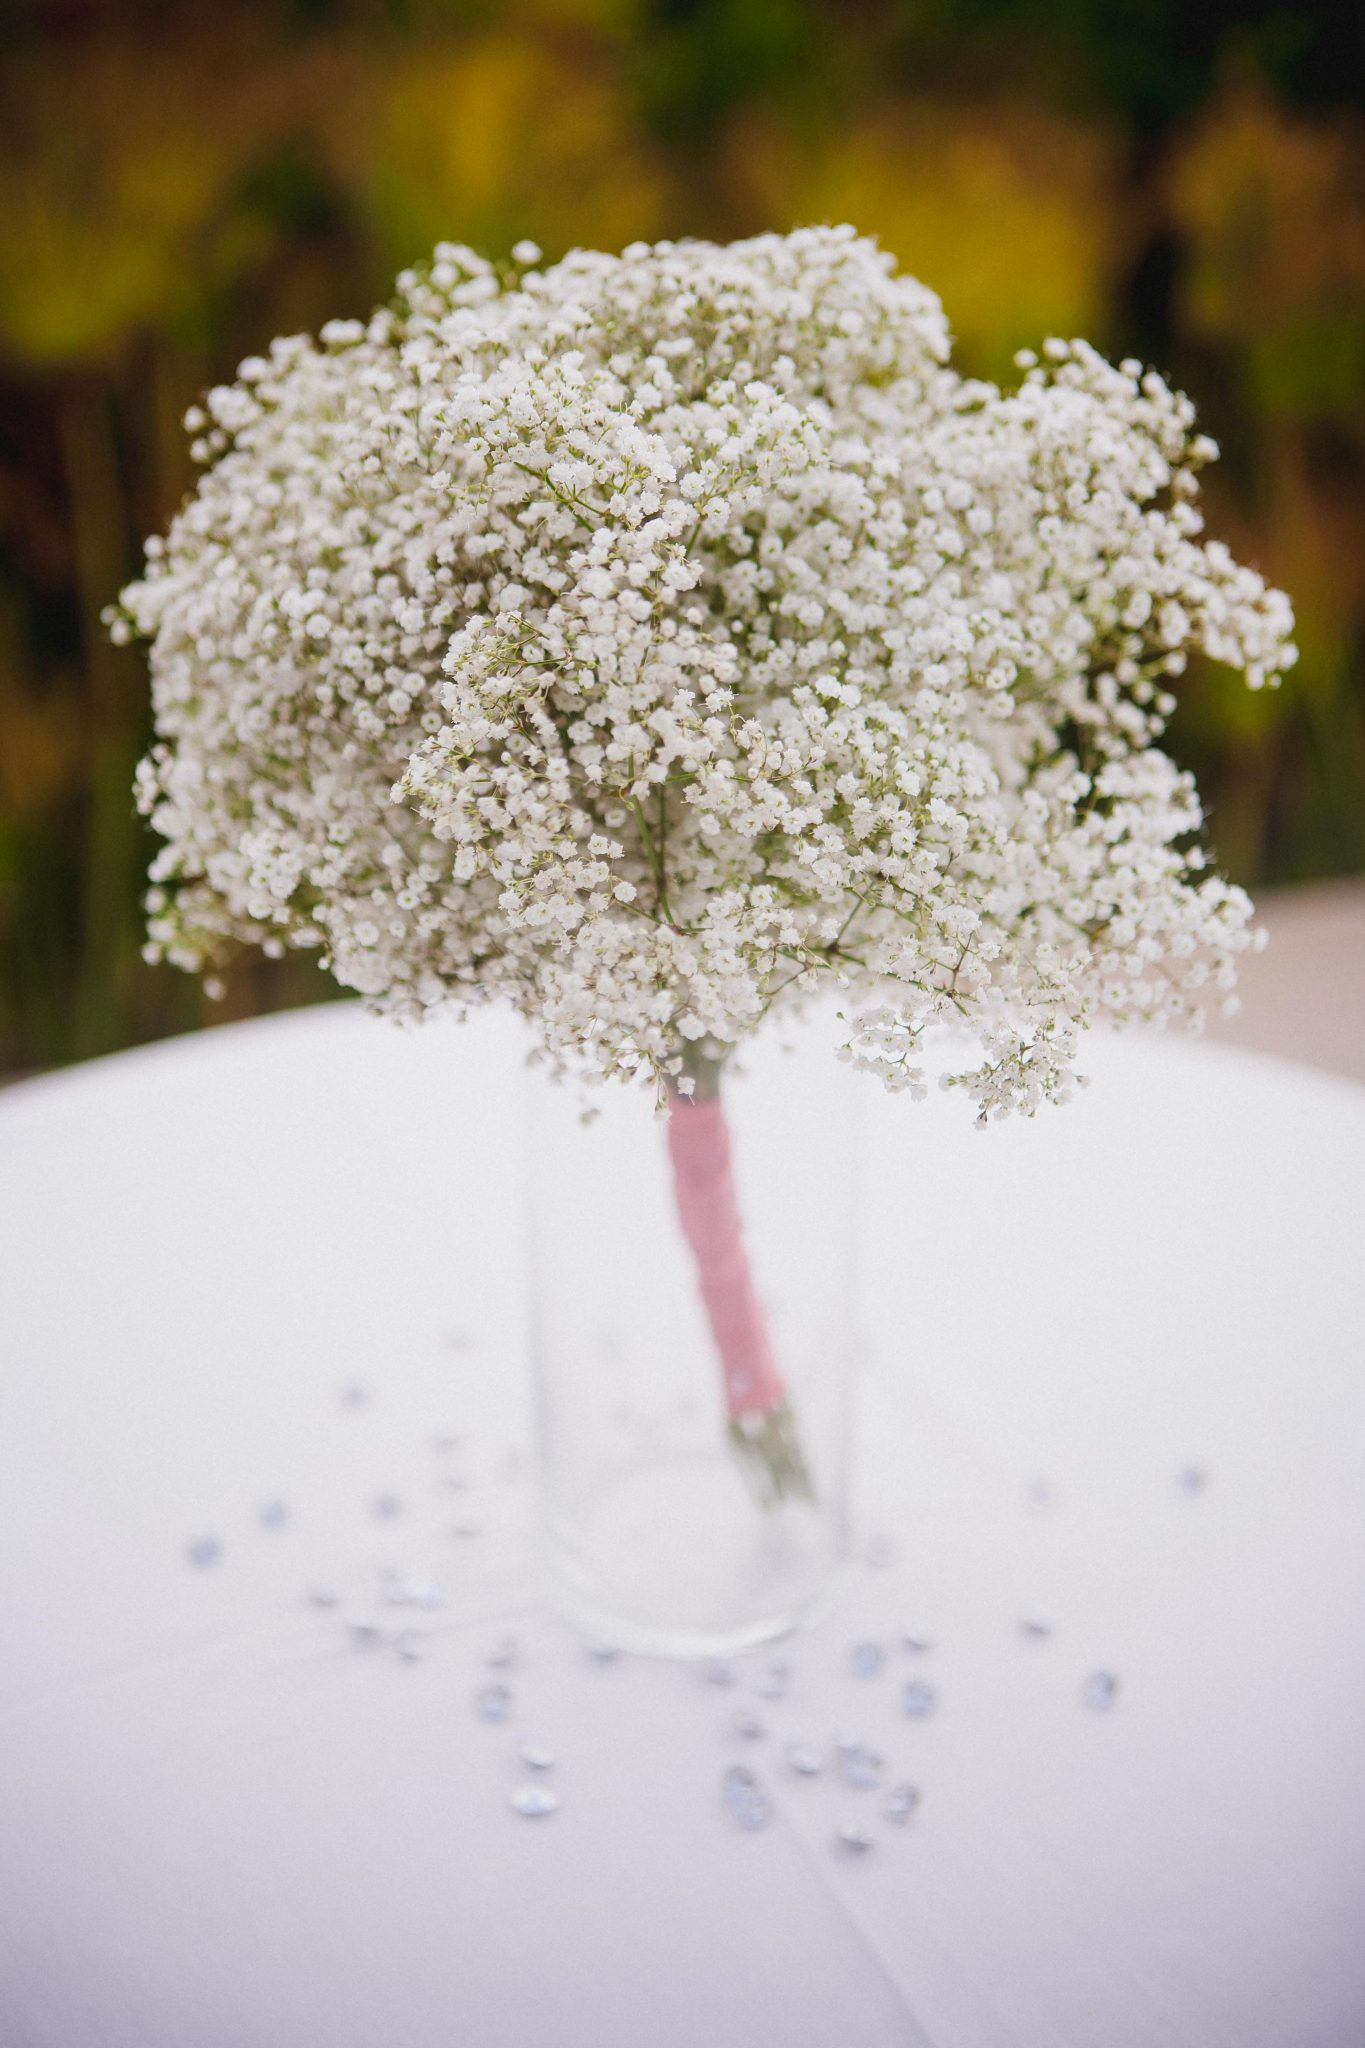 Baby's breath flowers as a wedding centerpiece during cocktail hour